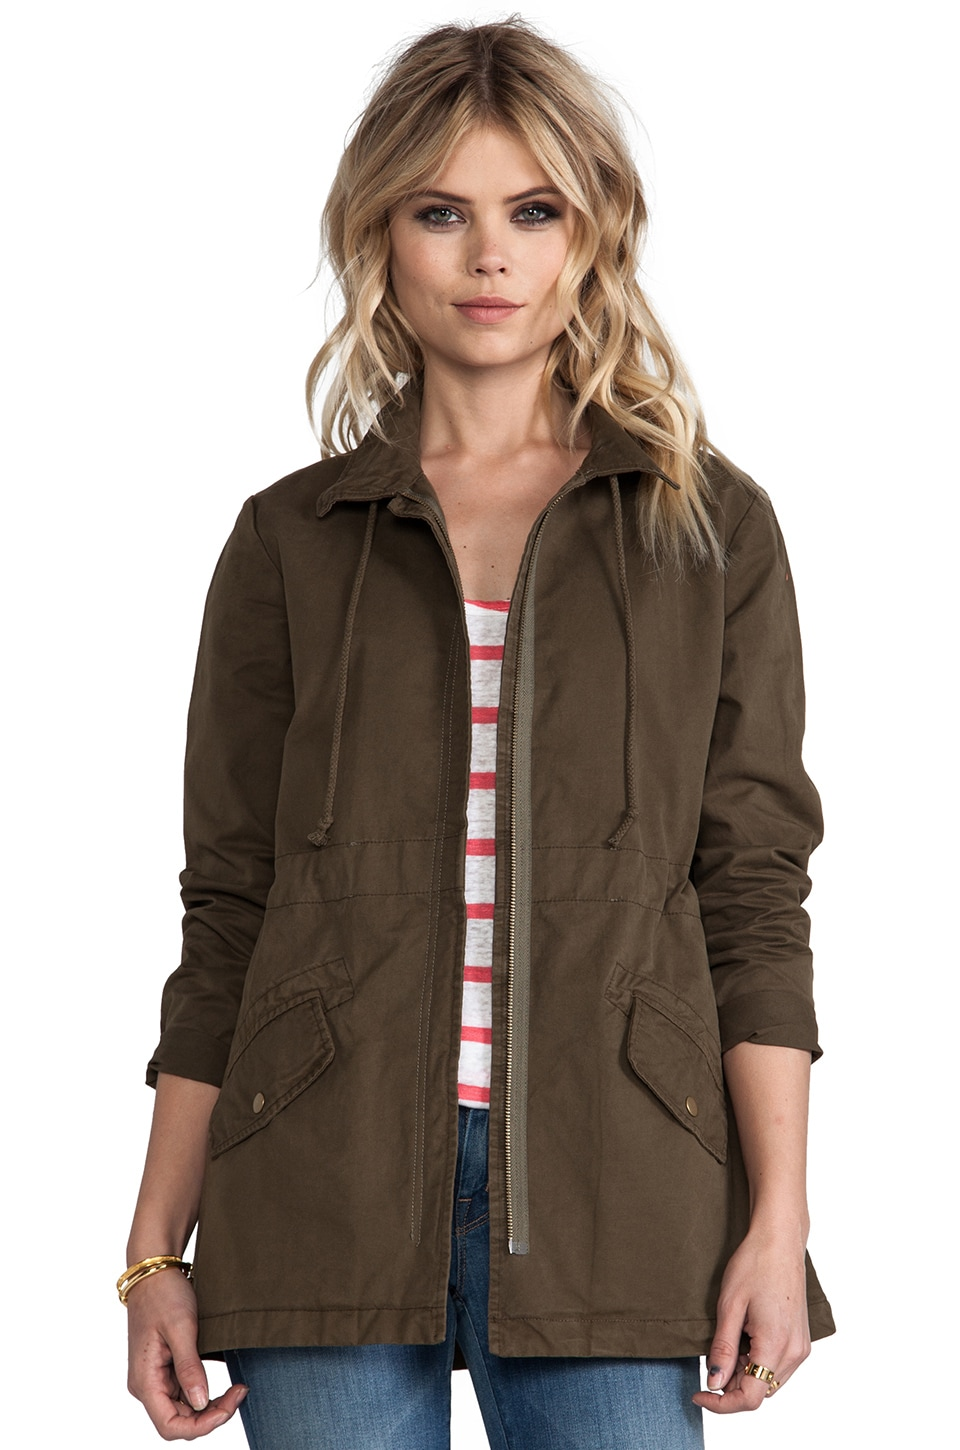 Bobi Military Jacket in Army Green